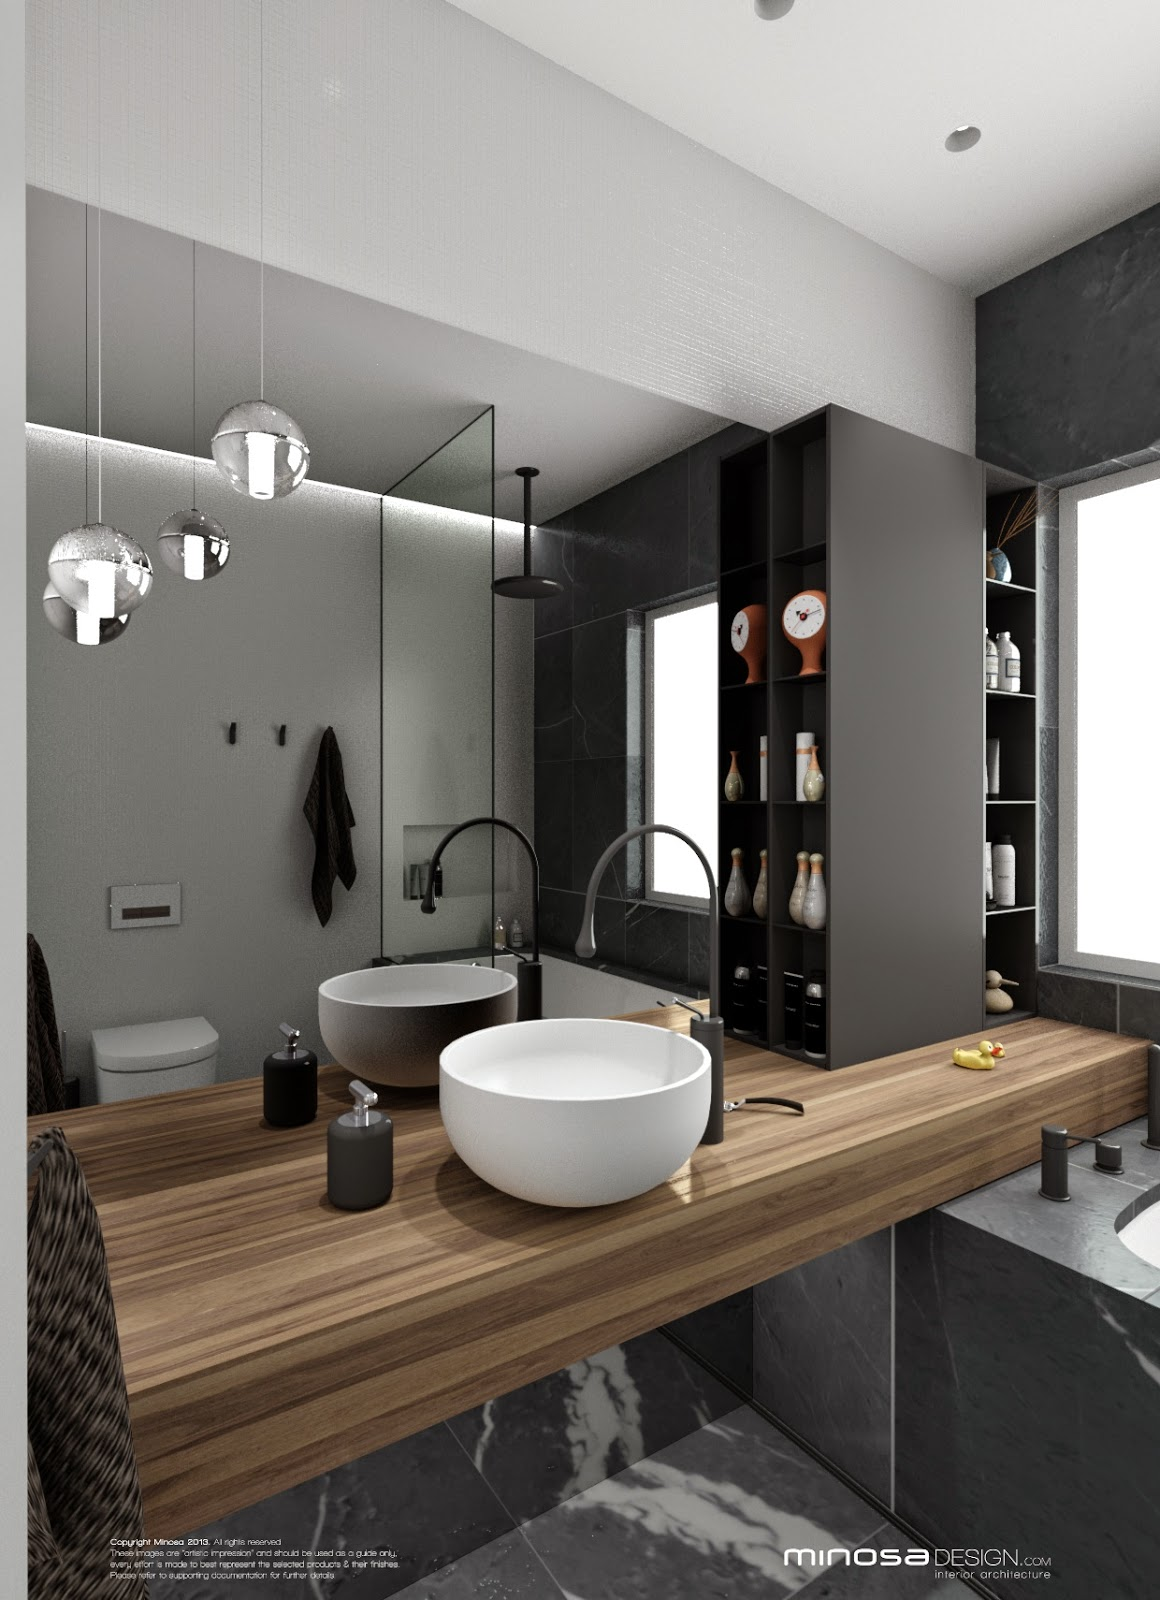 Minosa bathroom design small space feels large for Small bedroom with bathroom design